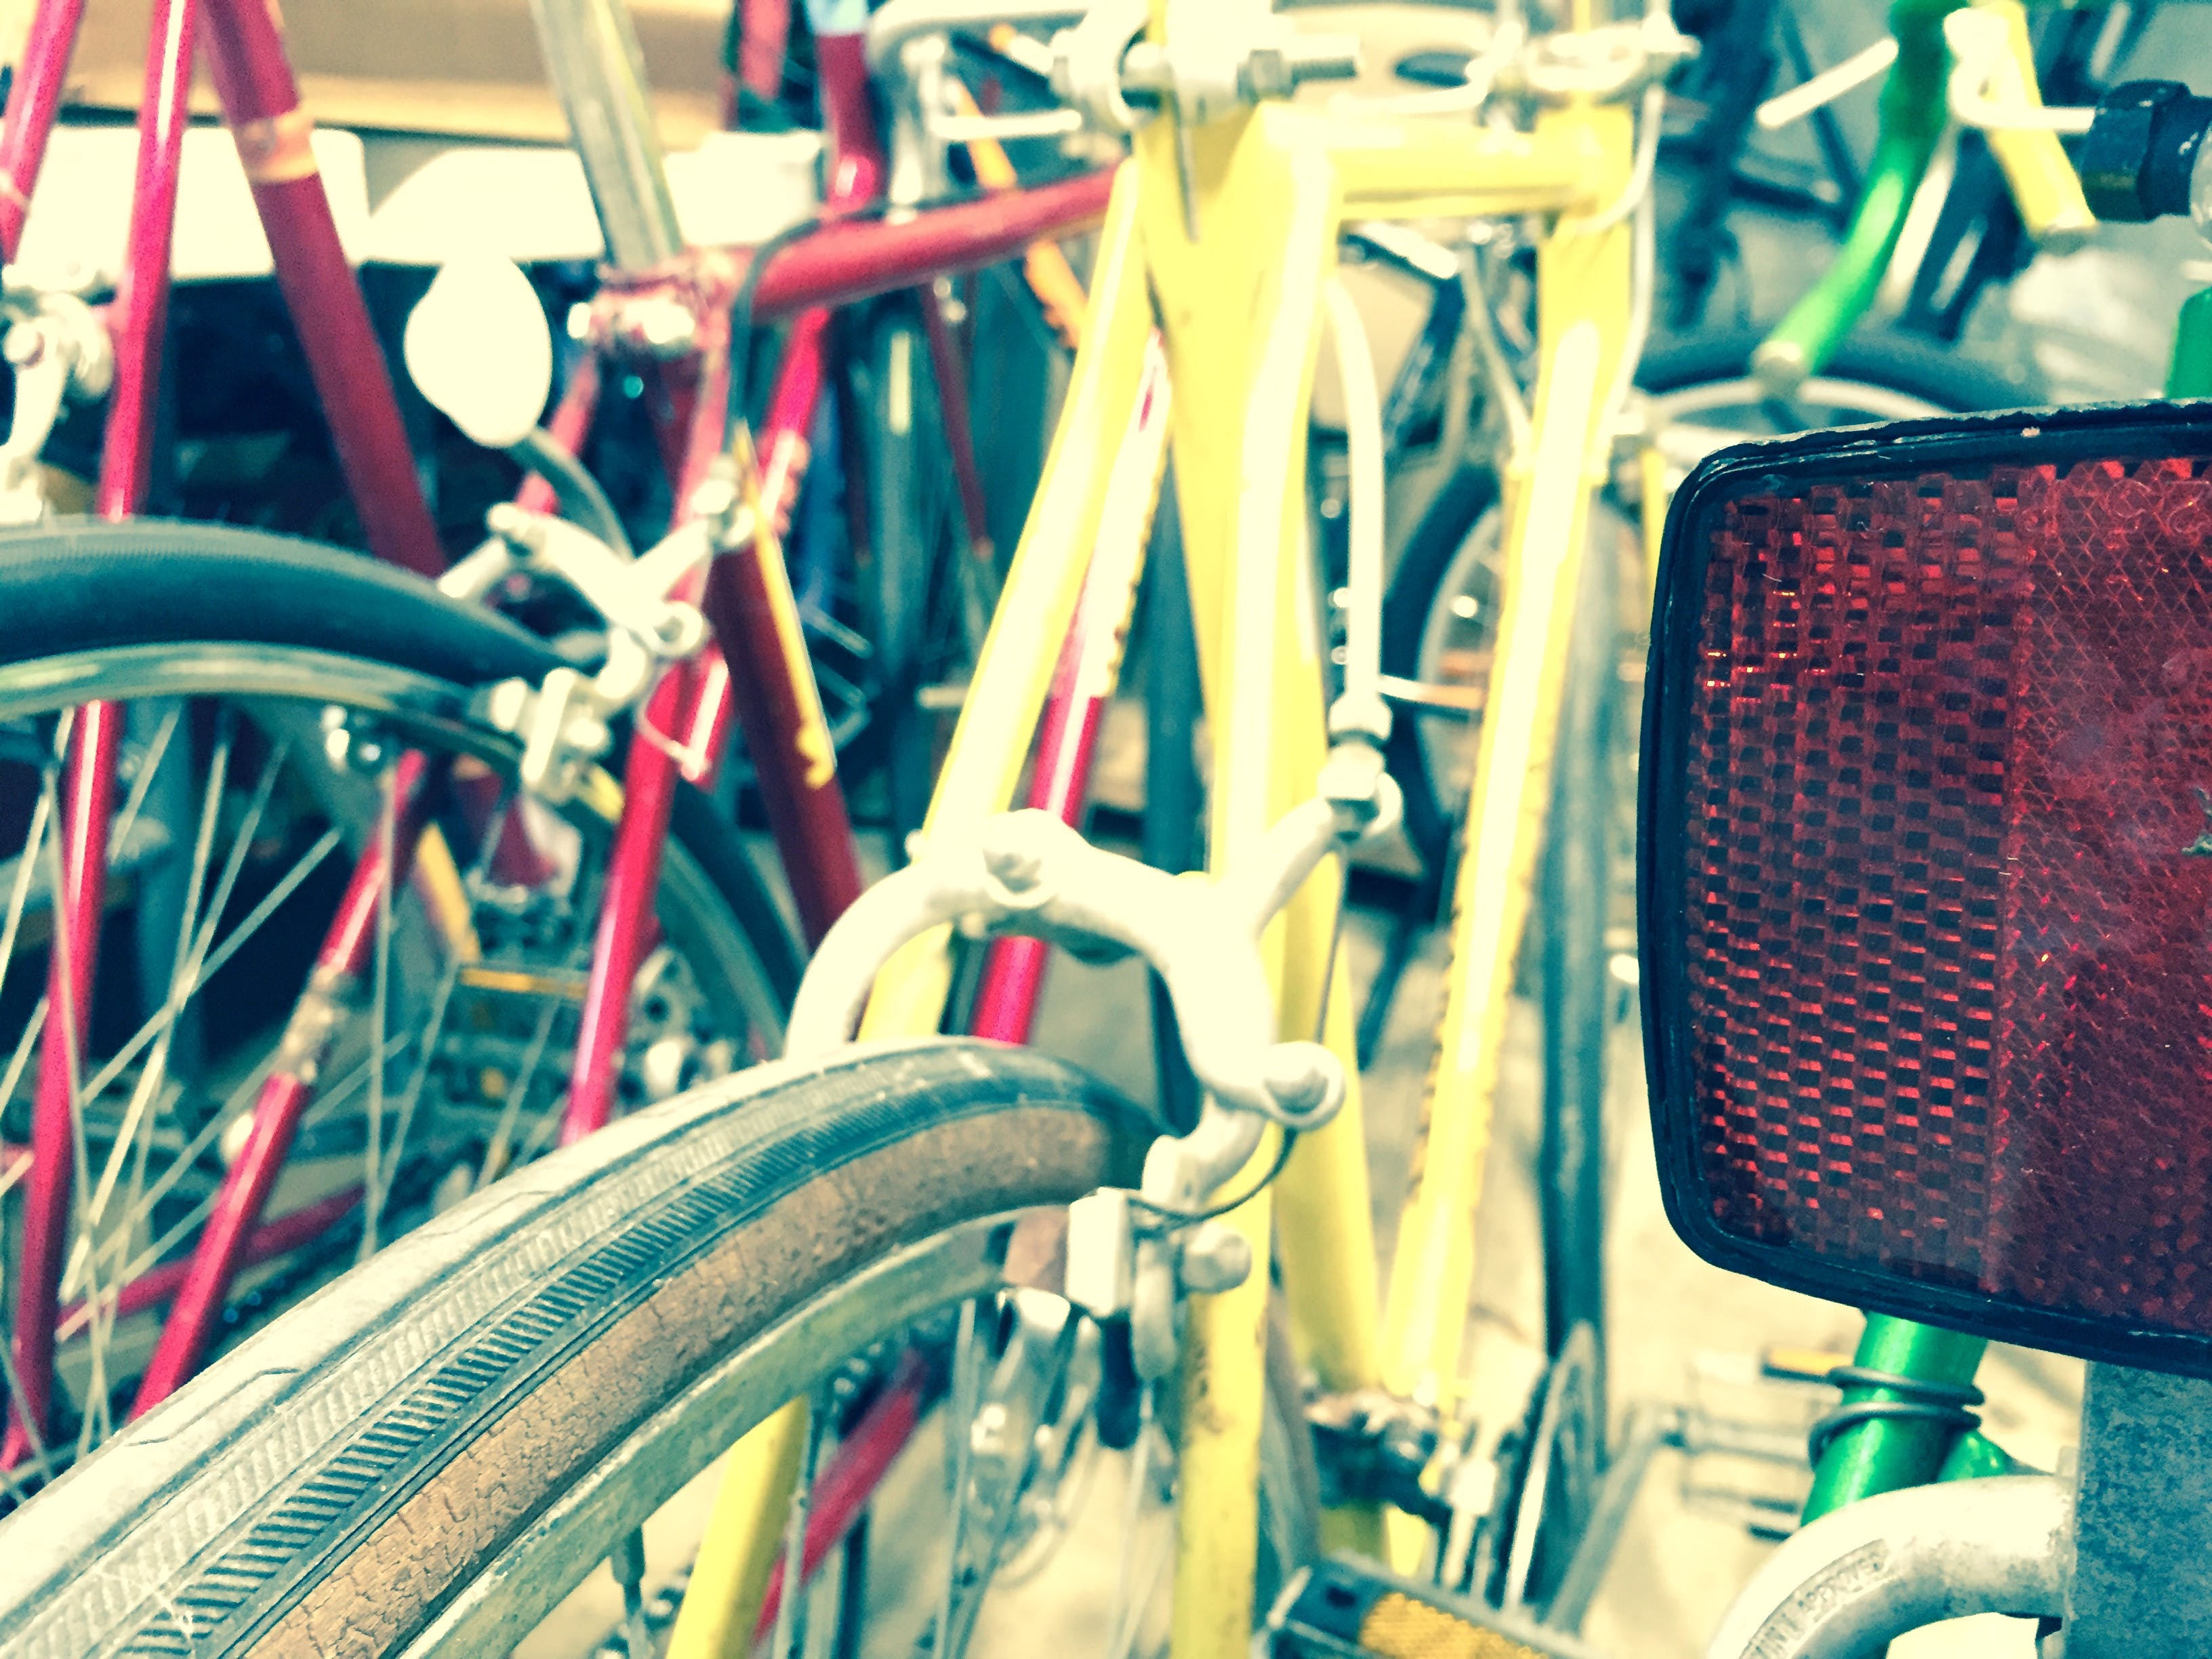 Free stock photo of Vintage Bicycles